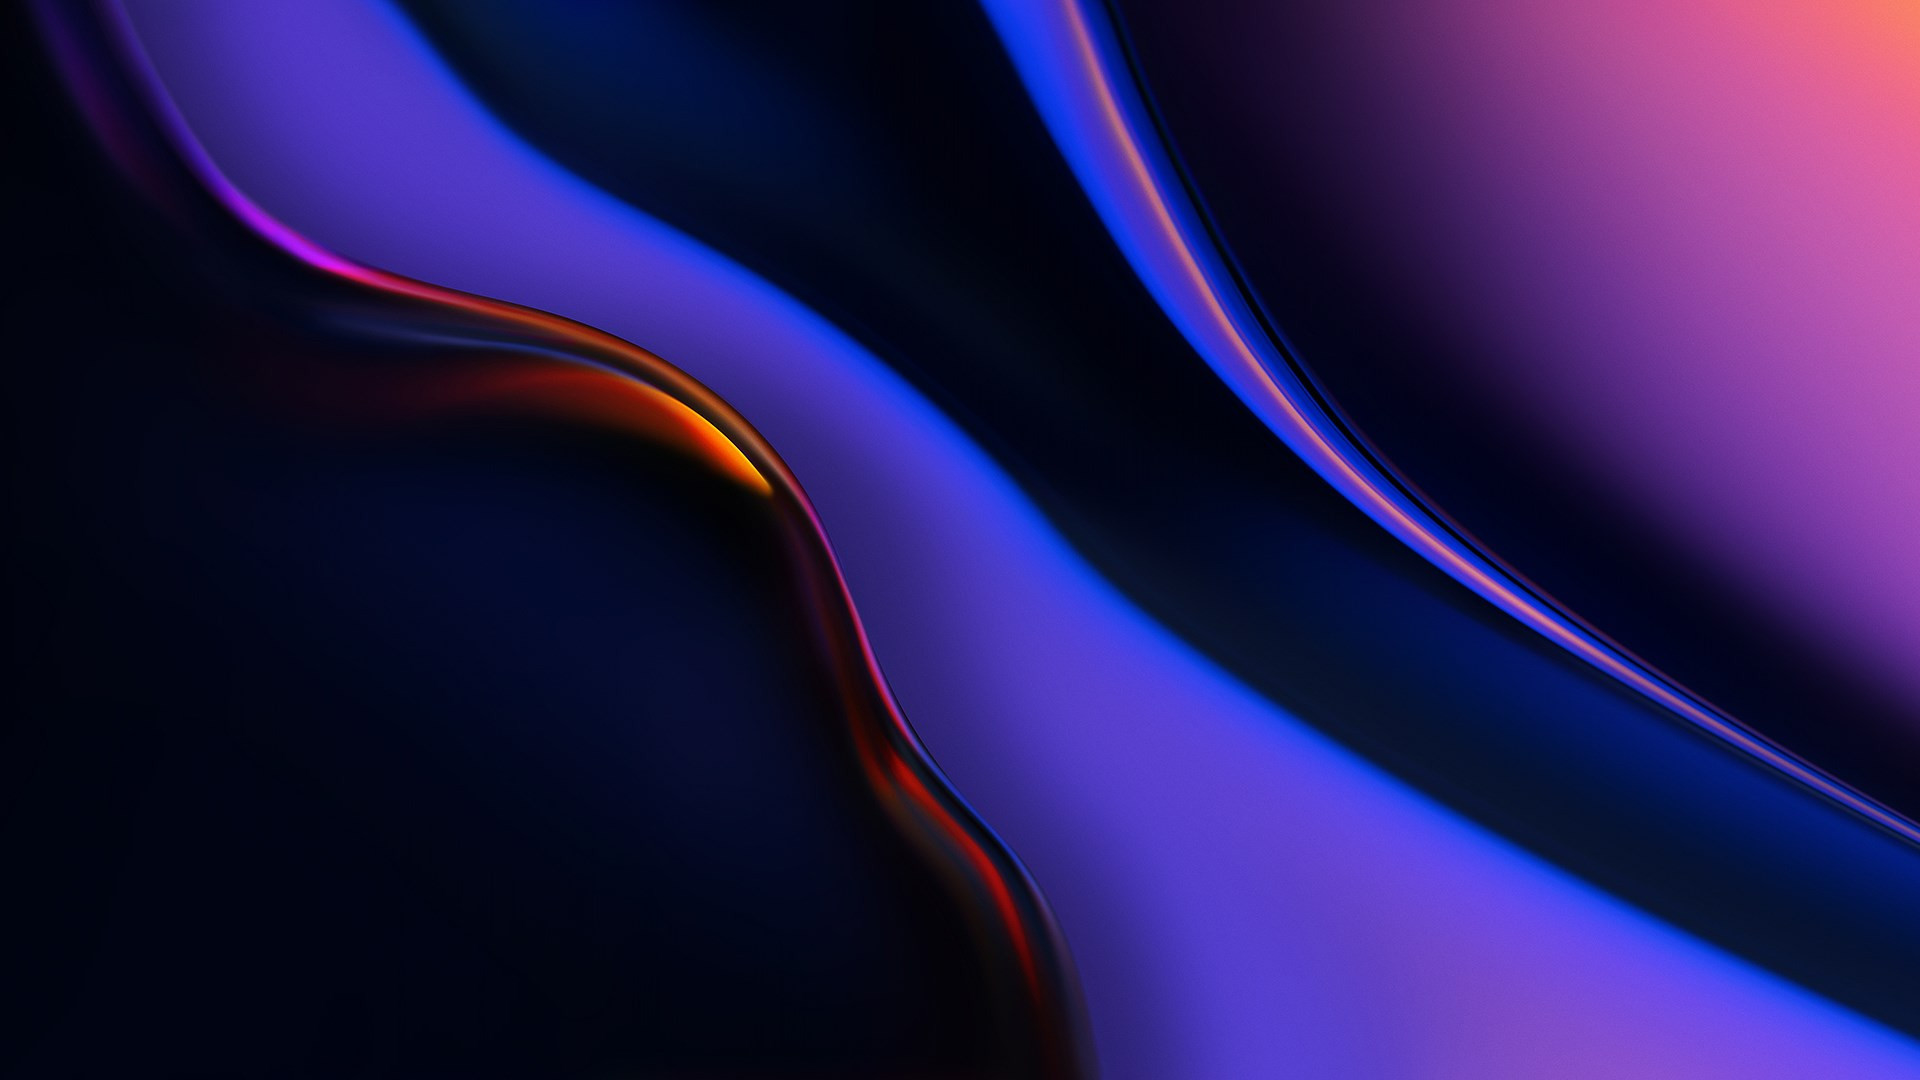 Download Wallpaper Oneplus 6t Stock Abstract 1920x1080